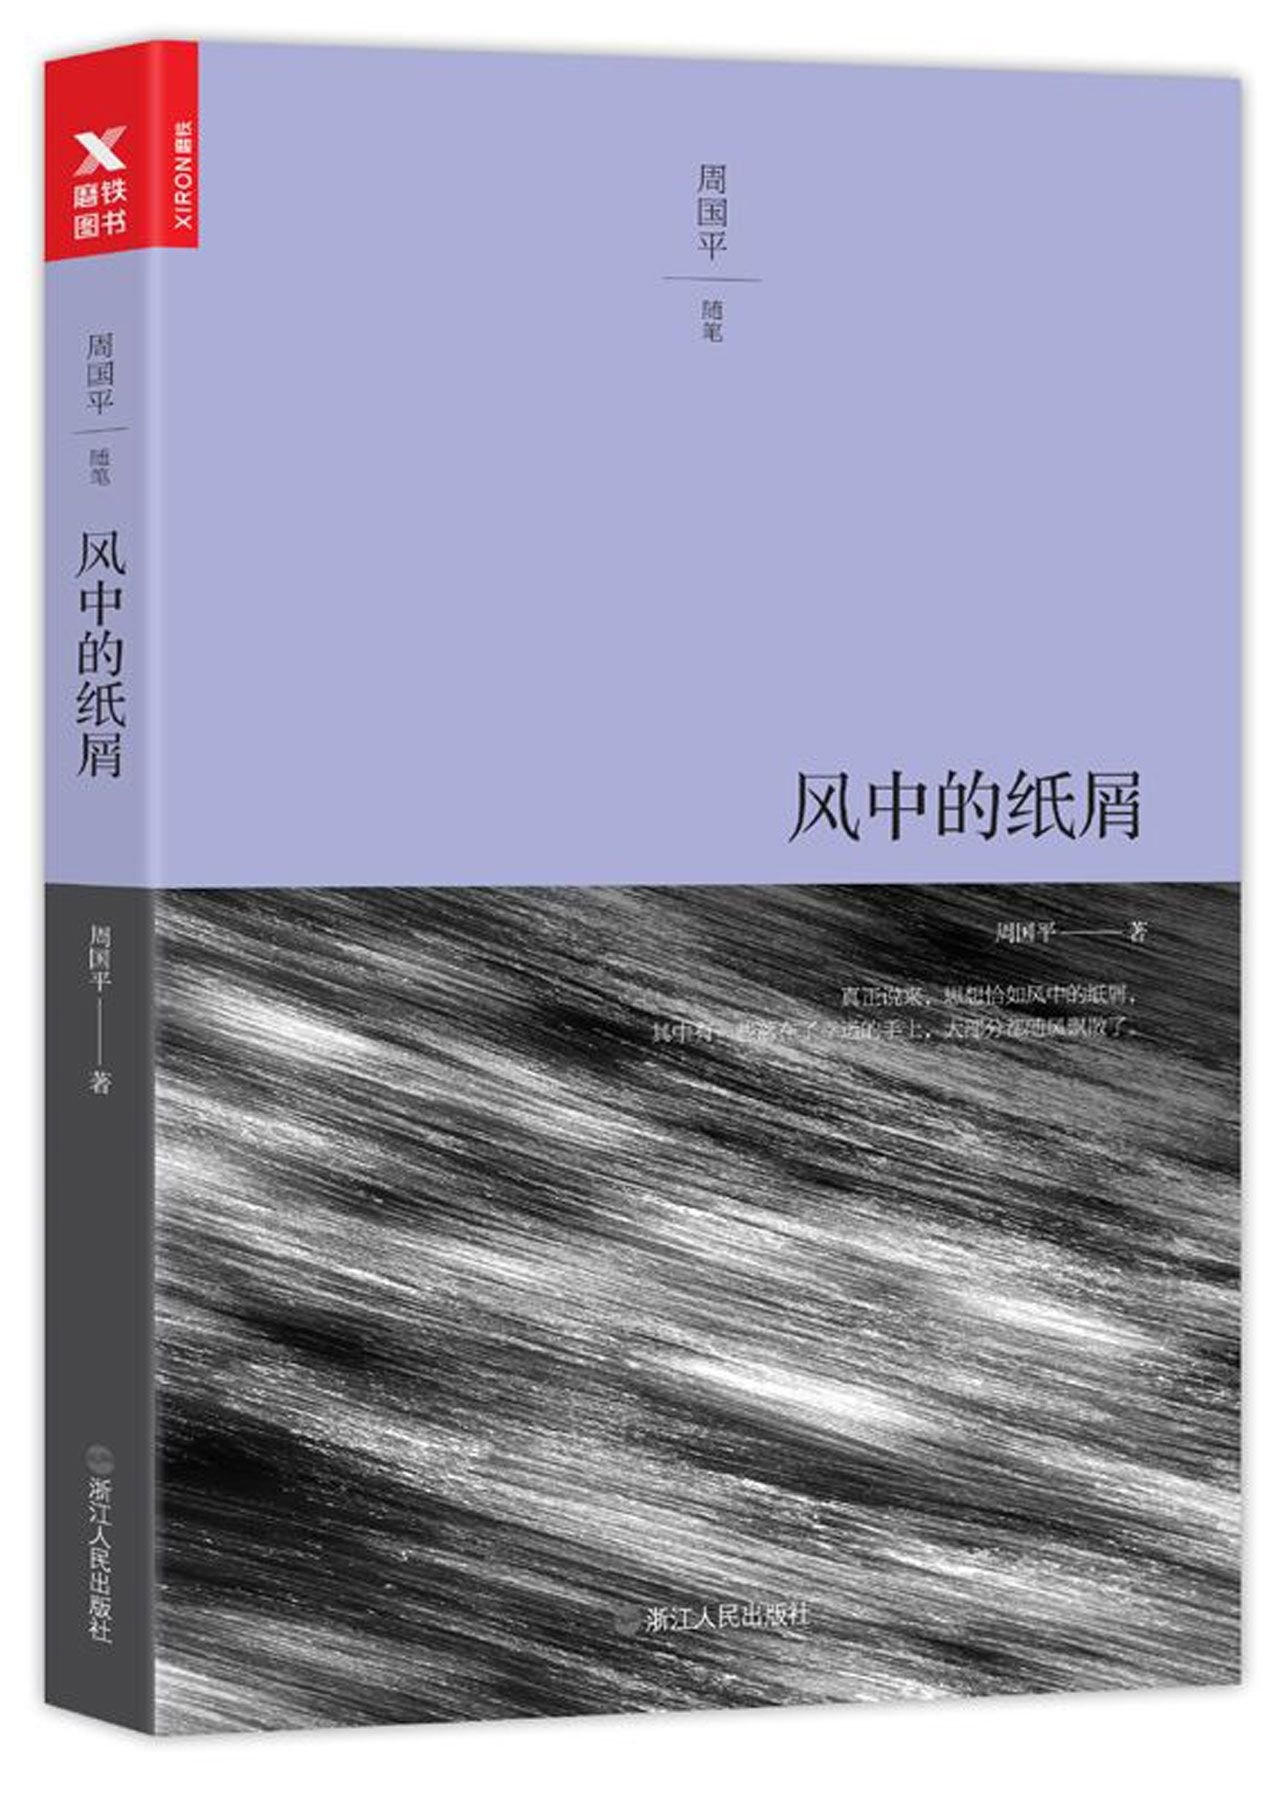 Scraps of Paper in the Wind (Chinese Edition) PDF